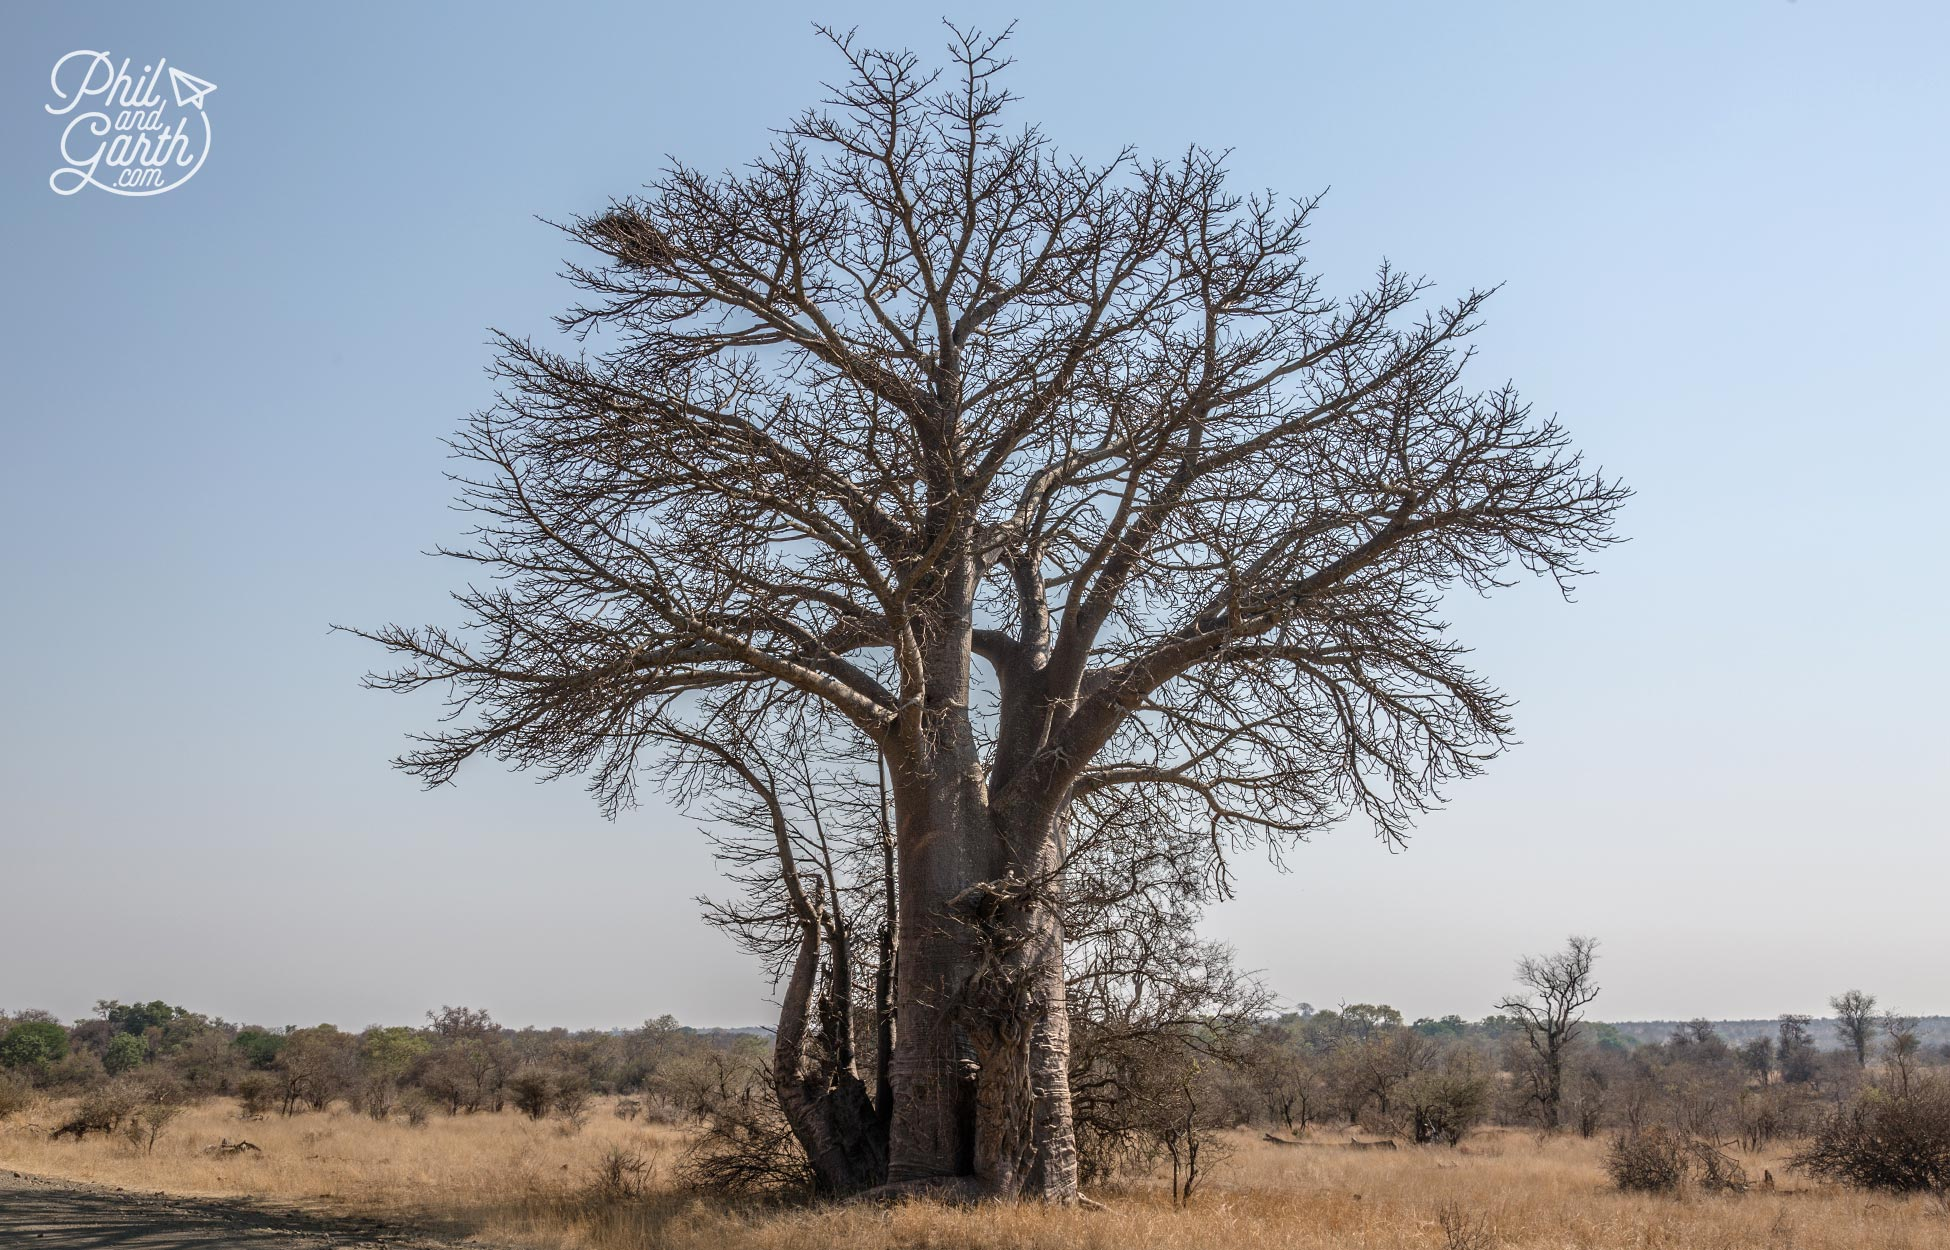 An ancient Baobab tree - Some in Kruger are 4,000 years old